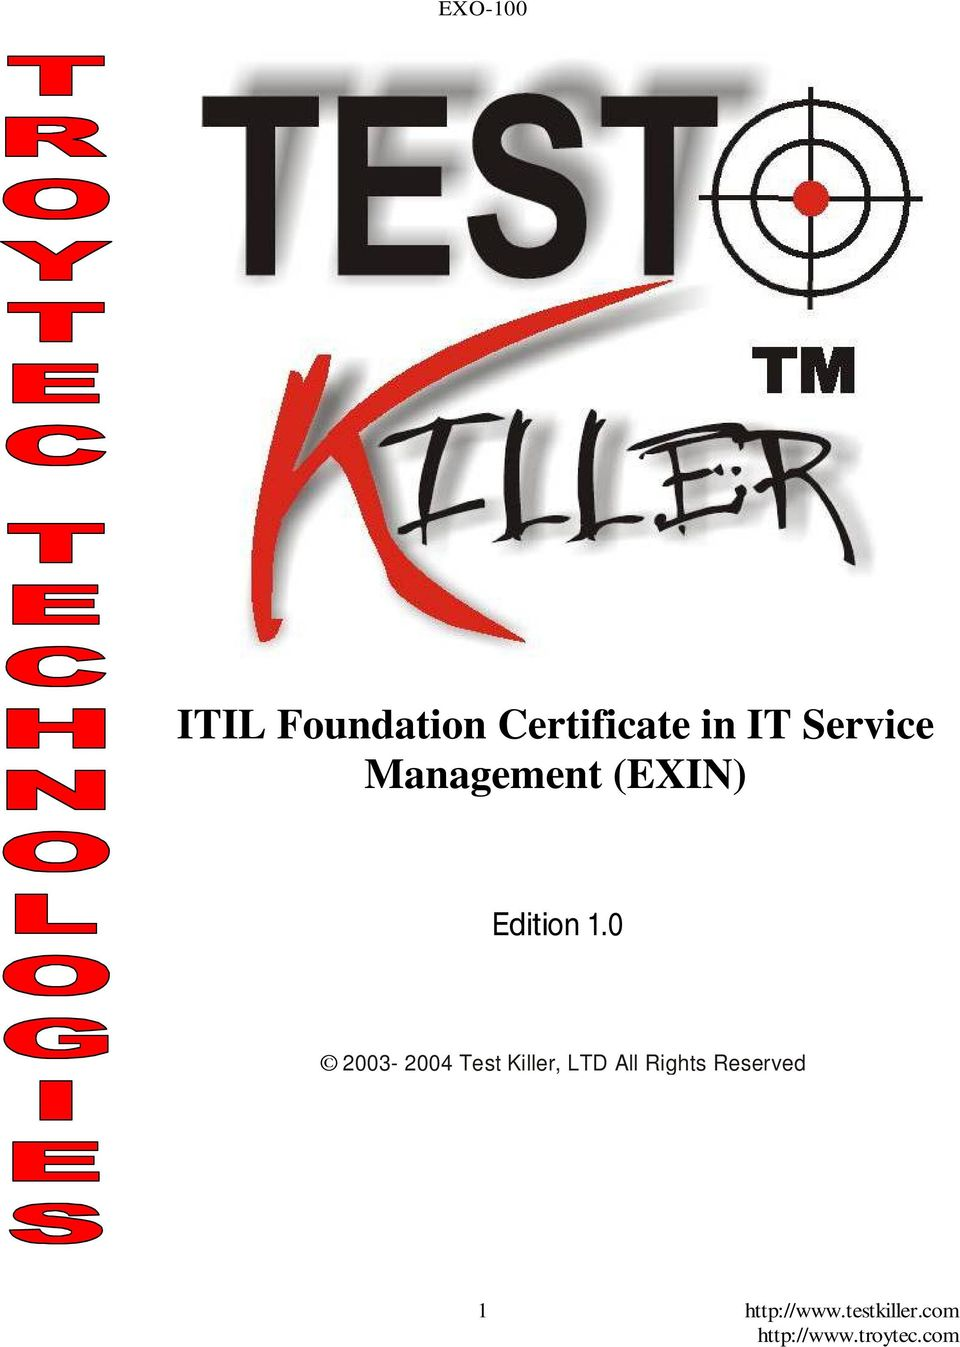 Itil Foundation Certificate In It Service Management Exin Pdf